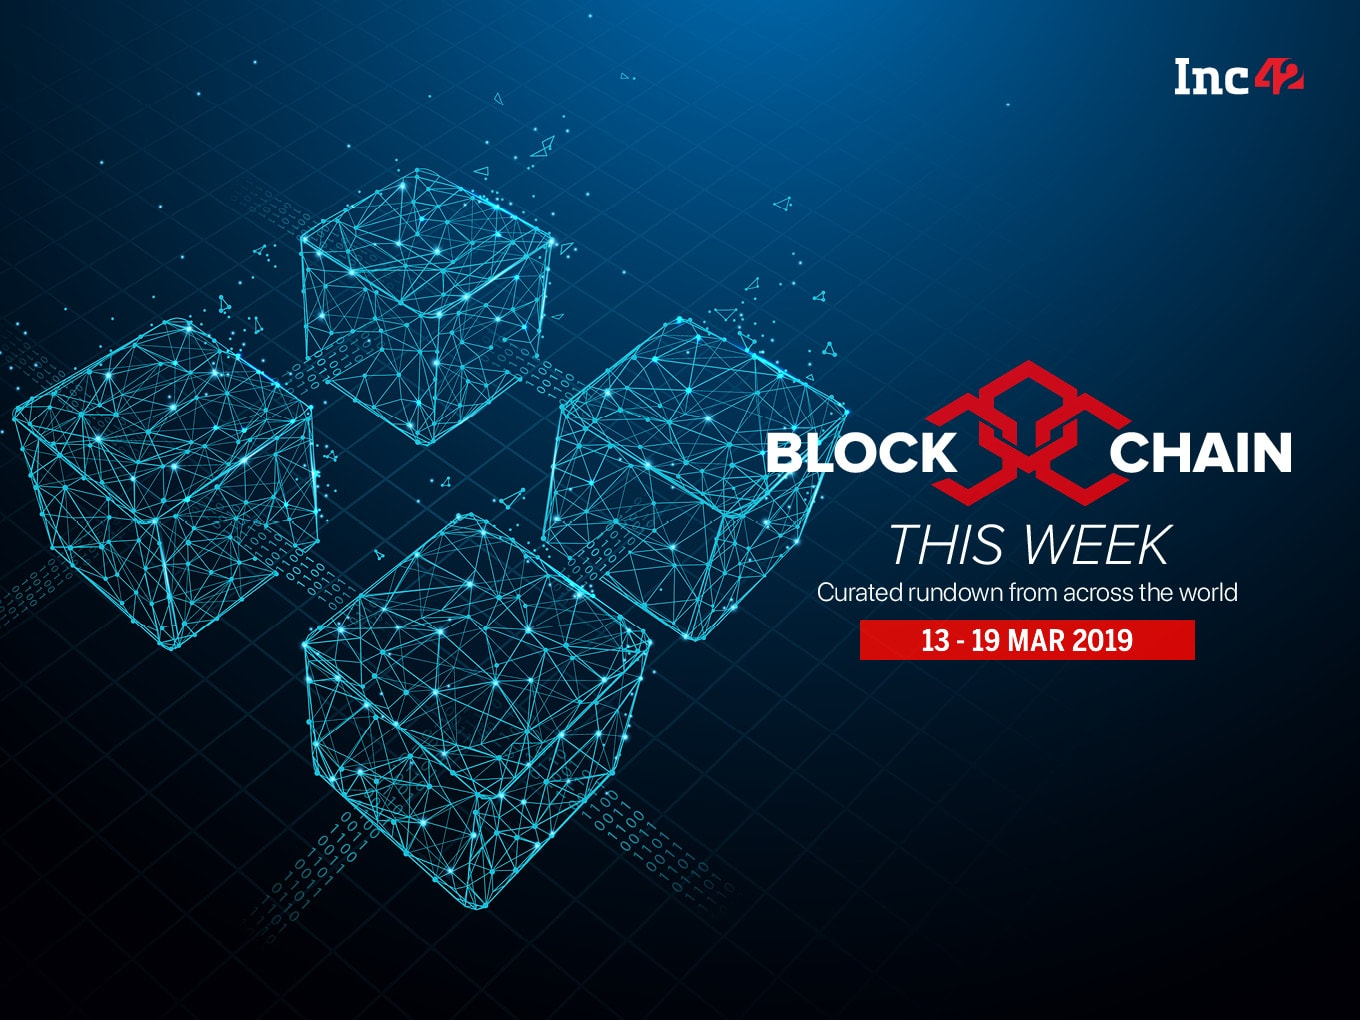 Blockchain This Week: India Ranked Sixth In The No Of Blockchain Patent Approvals, And More